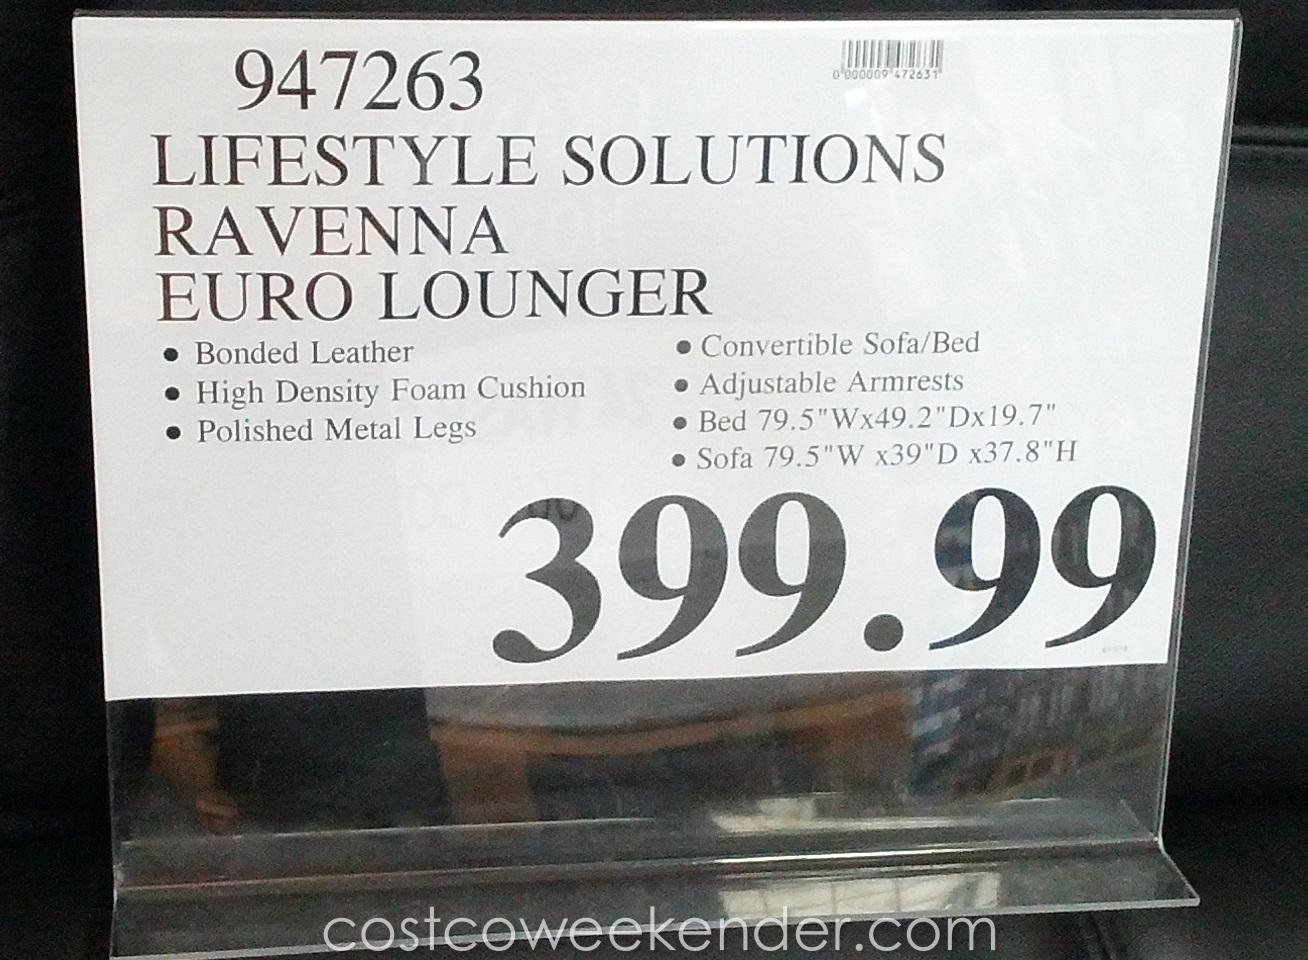 Leather Futon Costco | Roselawnlutheran In Euro Loungers (View 9 of 20)